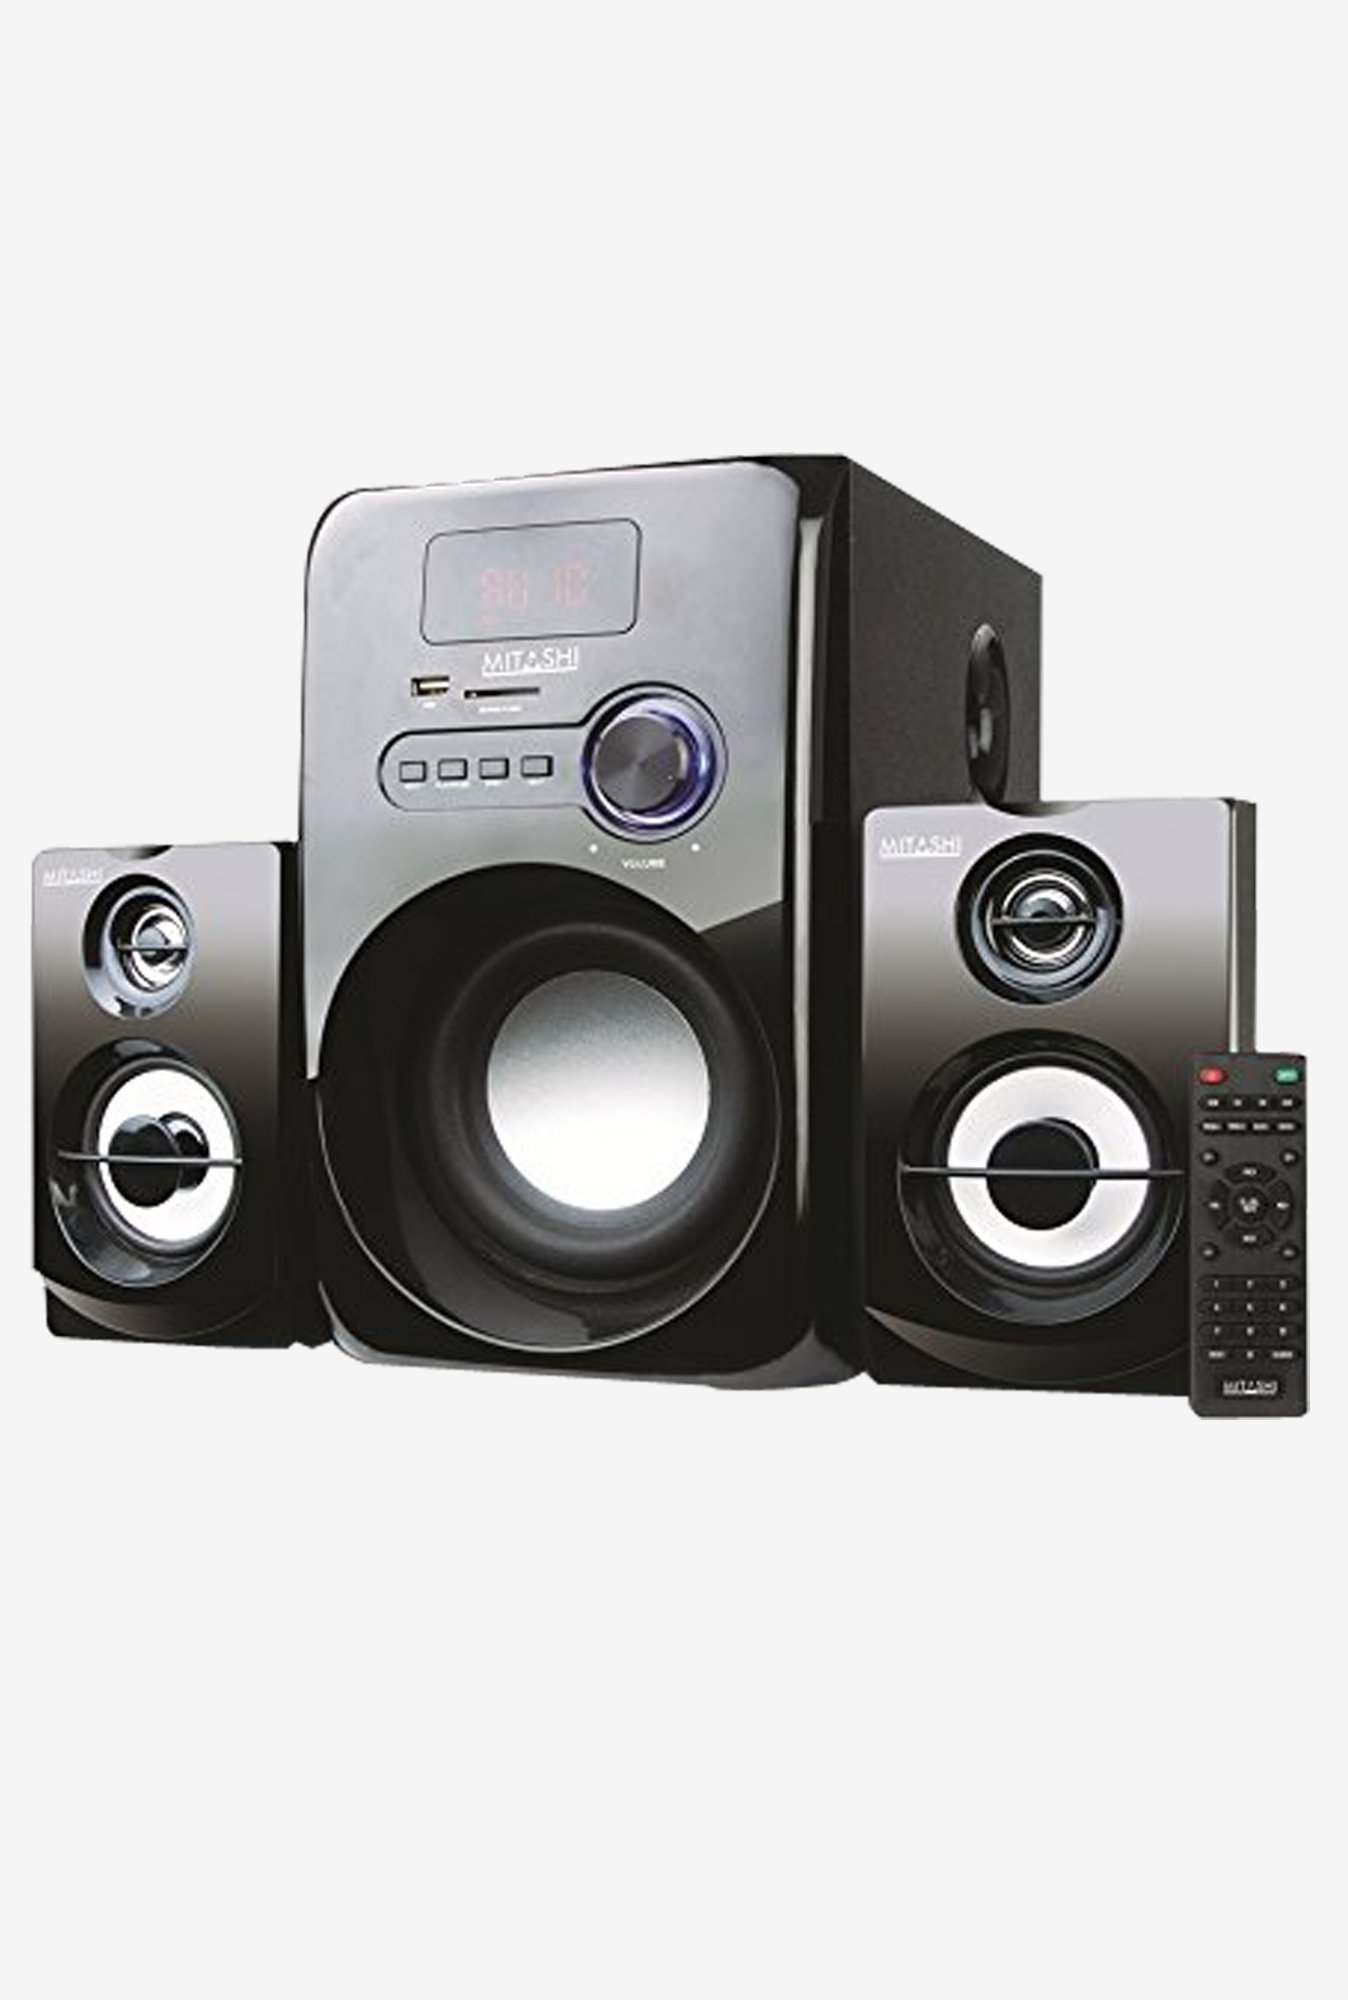 Mitashi HT 5275 BT 2.1 Channel Sub Woofer System (Black)